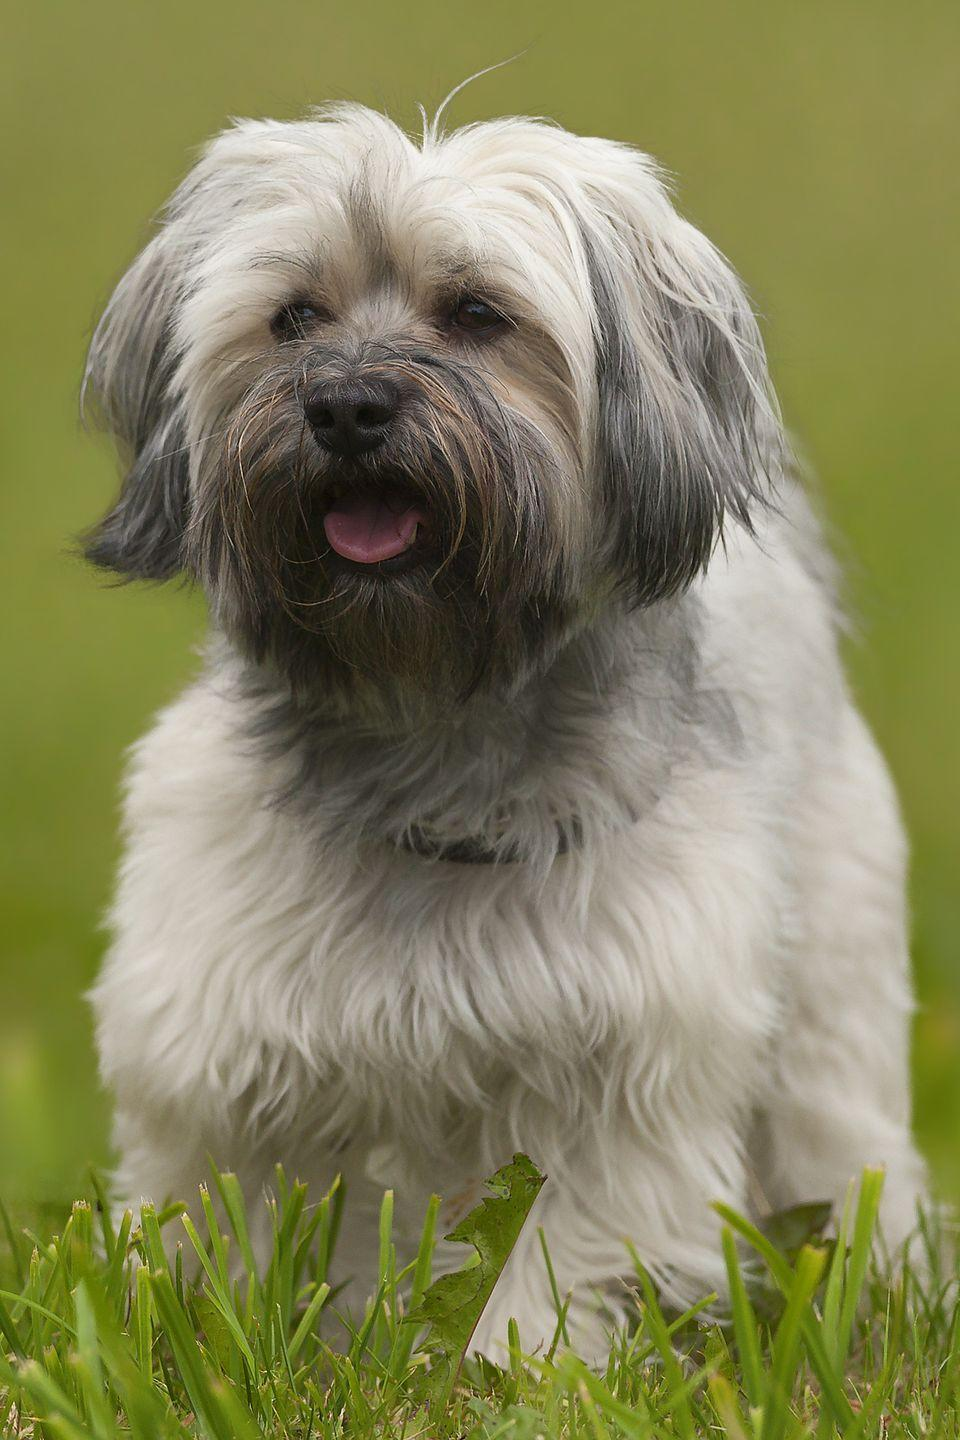 """<p>Happy and curious, <a href=""""https://www.goodhousekeeping.com/life/pets/advice/g1754/small-dog-breeds/?slide=11"""" rel=""""nofollow noopener"""" target=""""_blank"""" data-ylk=""""slk:Havanese"""" class=""""link rapid-noclick-resp"""">Havanese</a><span class=""""redactor-invisible-space""""> dogs sport silky, long coats in a variety of colors. They can look positively royal if you let their non-shedding coats grow long and carry them around like the kings and queens they think they are. Many owners prefer to give them a shorter clip for easier maintenance, and more playtime with less brushing. </span></p>"""